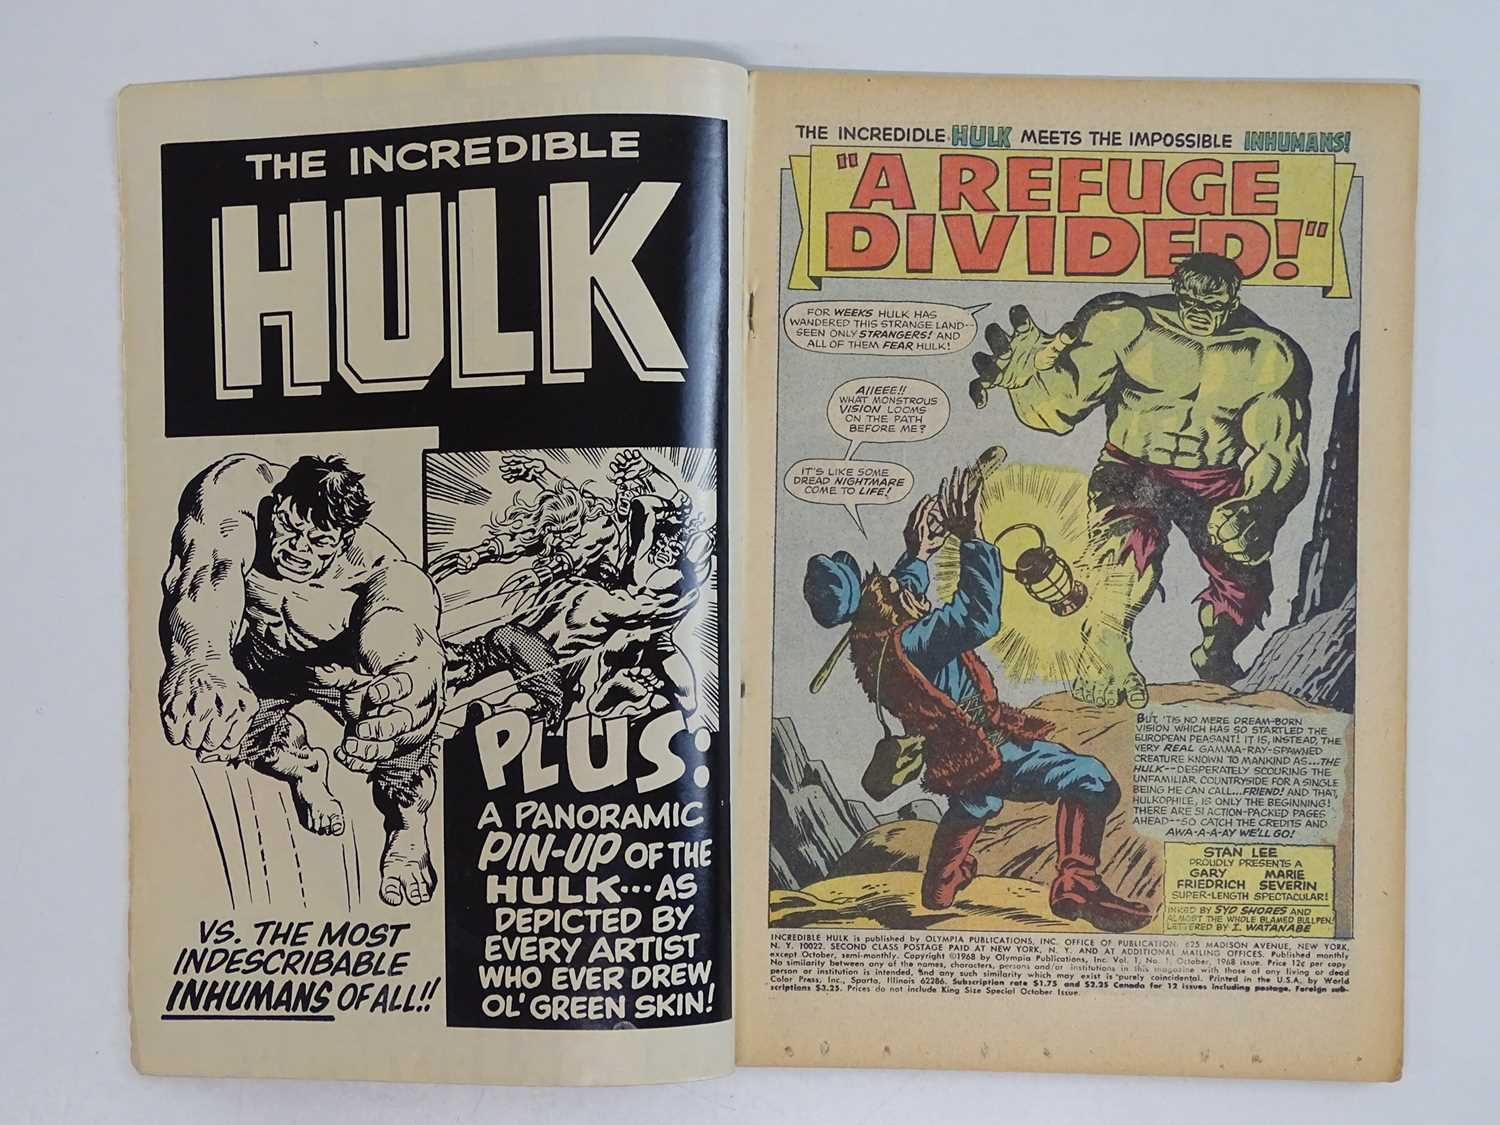 INCREDIBLE HULK: KING-SIZE SPECIAL #1 - (1968 - MARVEL) - Classic Steranko cover + Hulk battles - Image 3 of 9